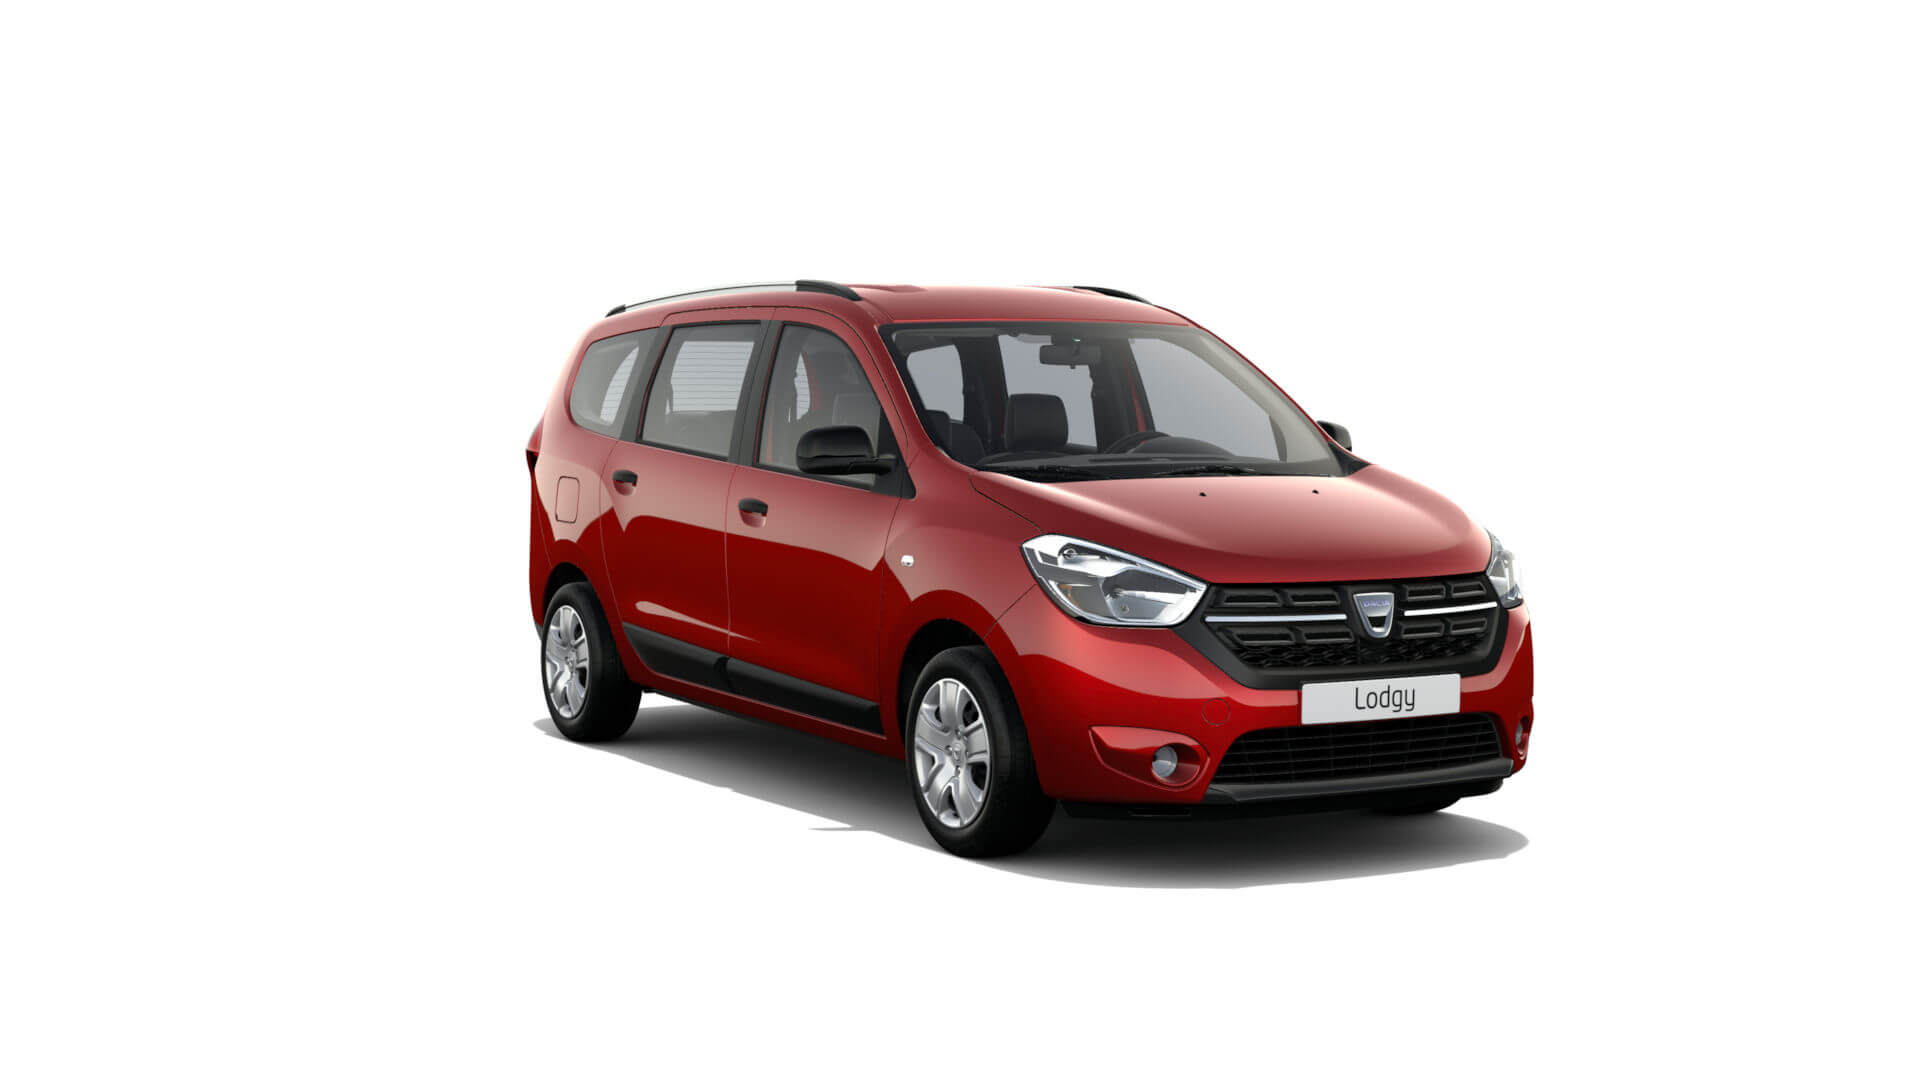 Automodell rot - Dacia Lodgy - Renault Ahrens Hannover